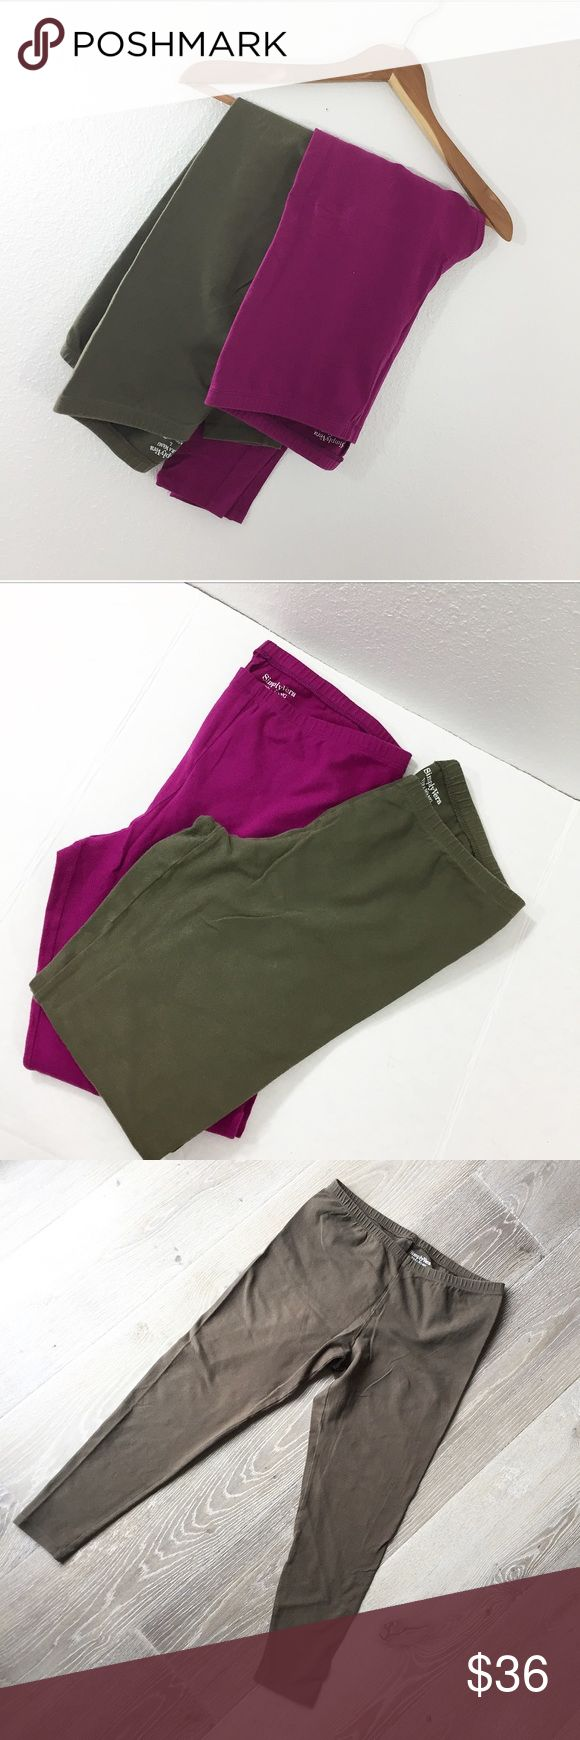 SIMPLY VERA WANG • legging bundle Bundle of 2 Simply Vera Vera Wang tights/ leggings High rise  Elastic waistline  Temperature-regulating fabric  Worn, has some pilling on crotch area (see photos) 1 Fuscia, 1 Army green Simply Vera Vera Wang Pants Leggings